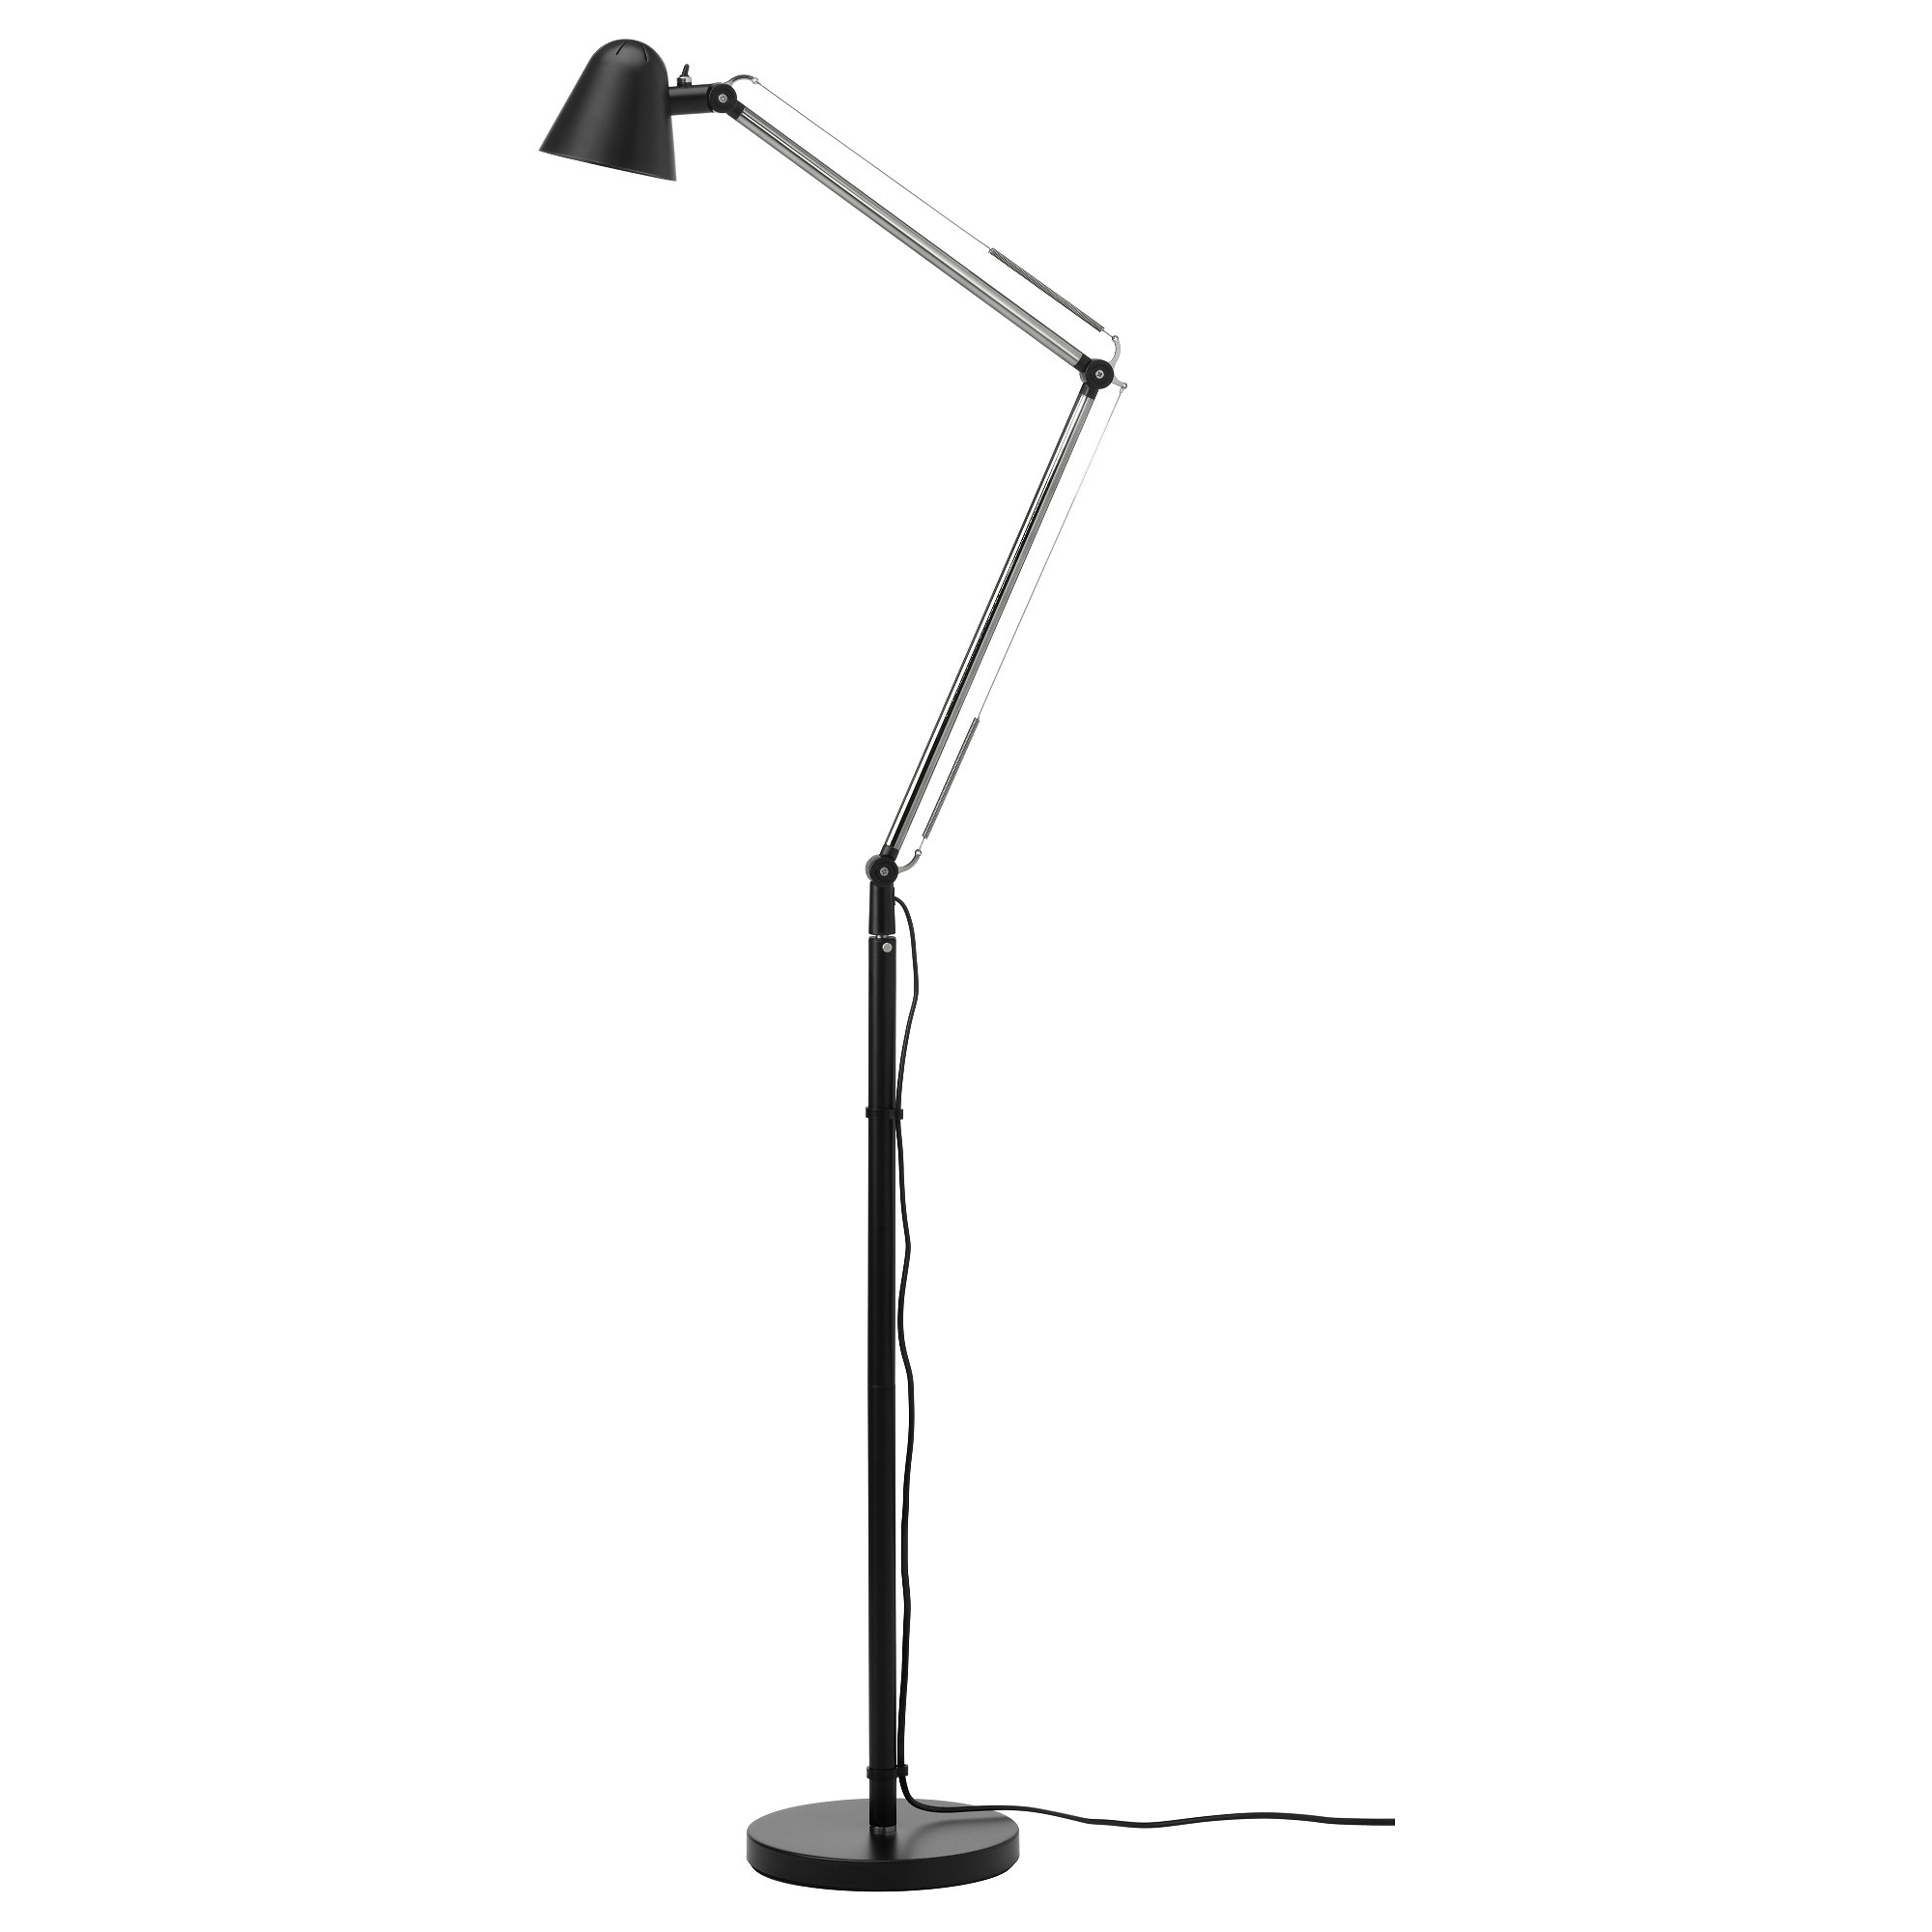 floor lamps  modern  contemporary floor lamps  ikea - uppbo floorreading lamp with led bulb black max  w height